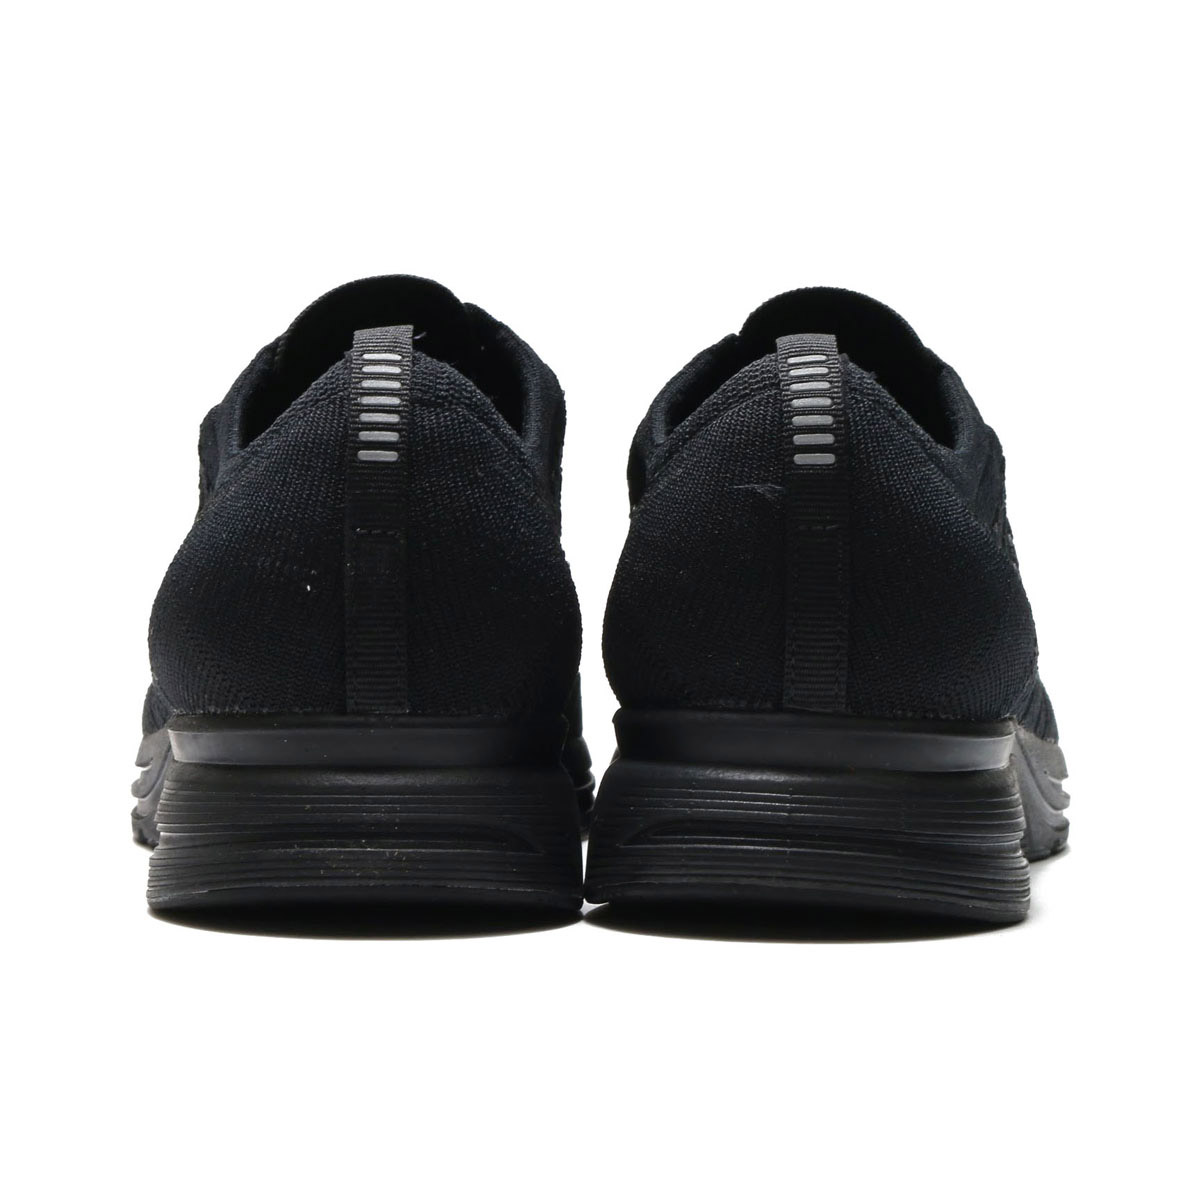 31cb53891dd5 NIKE FLYKNIT TRAINER (Nike fried food knit trainer)  (BLACK ANTHRACITE-BLACK) 18SP-S